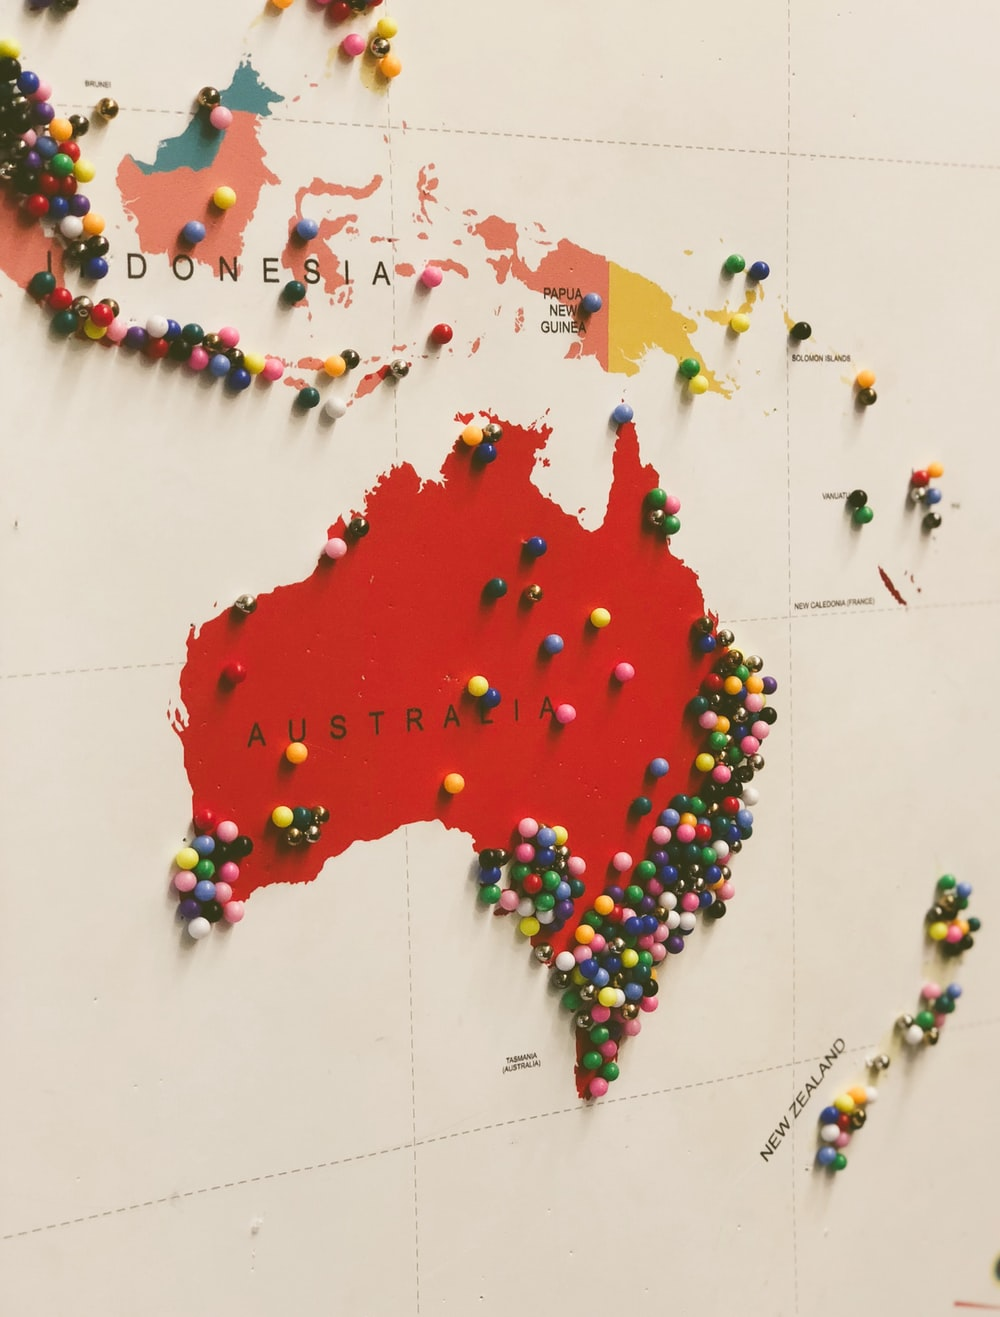 Australia map filled with pins